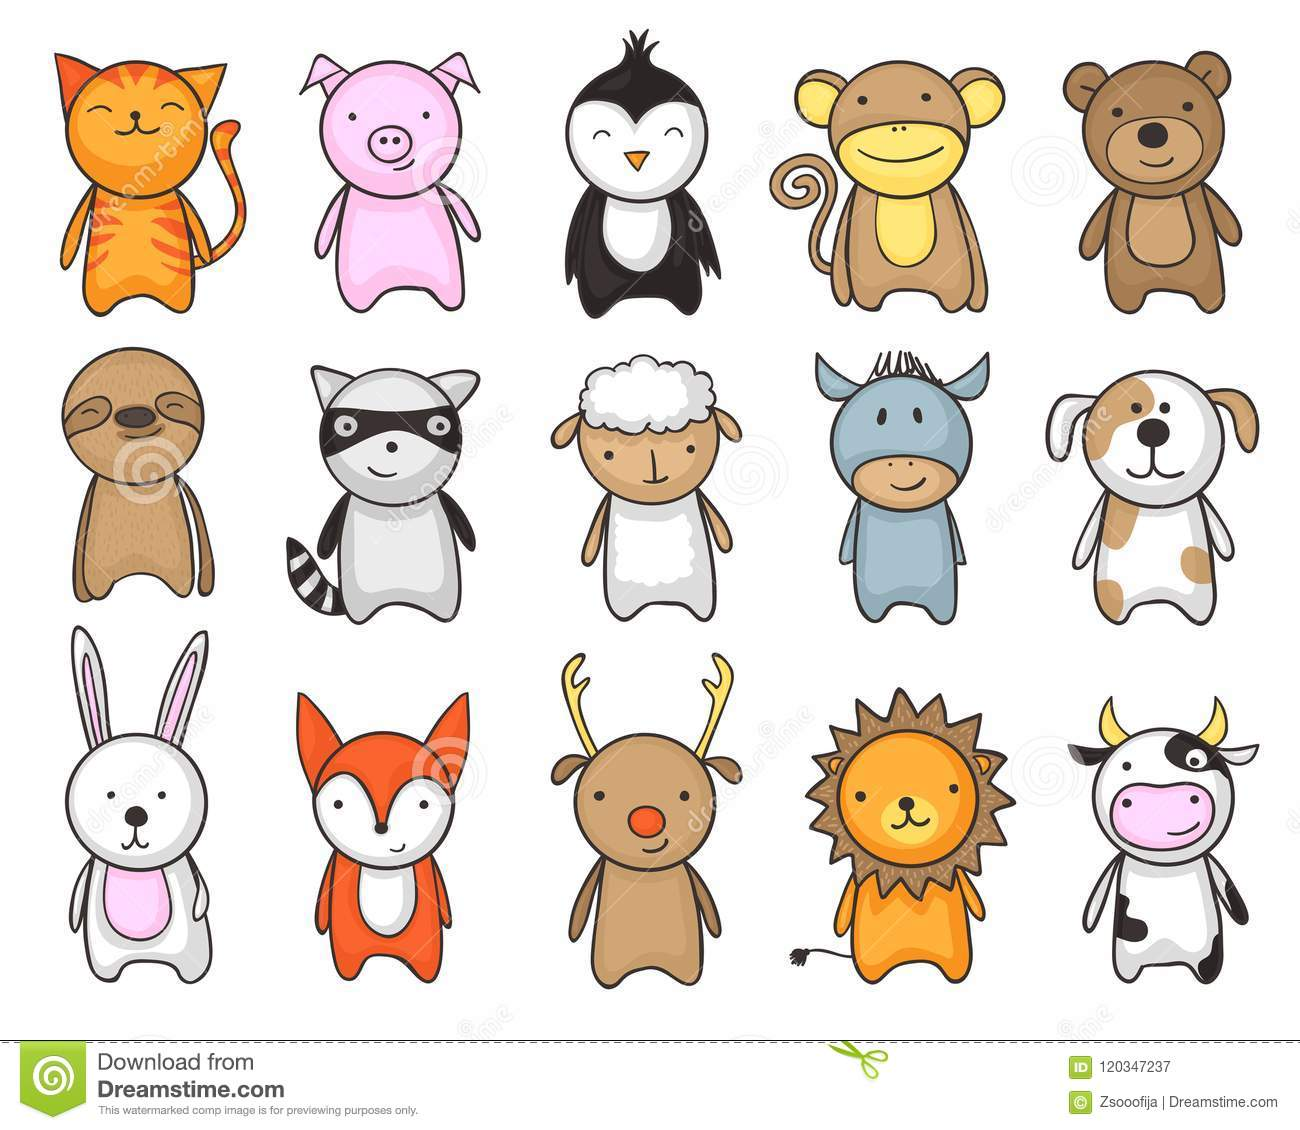 Toy Animals Cartoon Set For Children Stock Vector Illustration Of